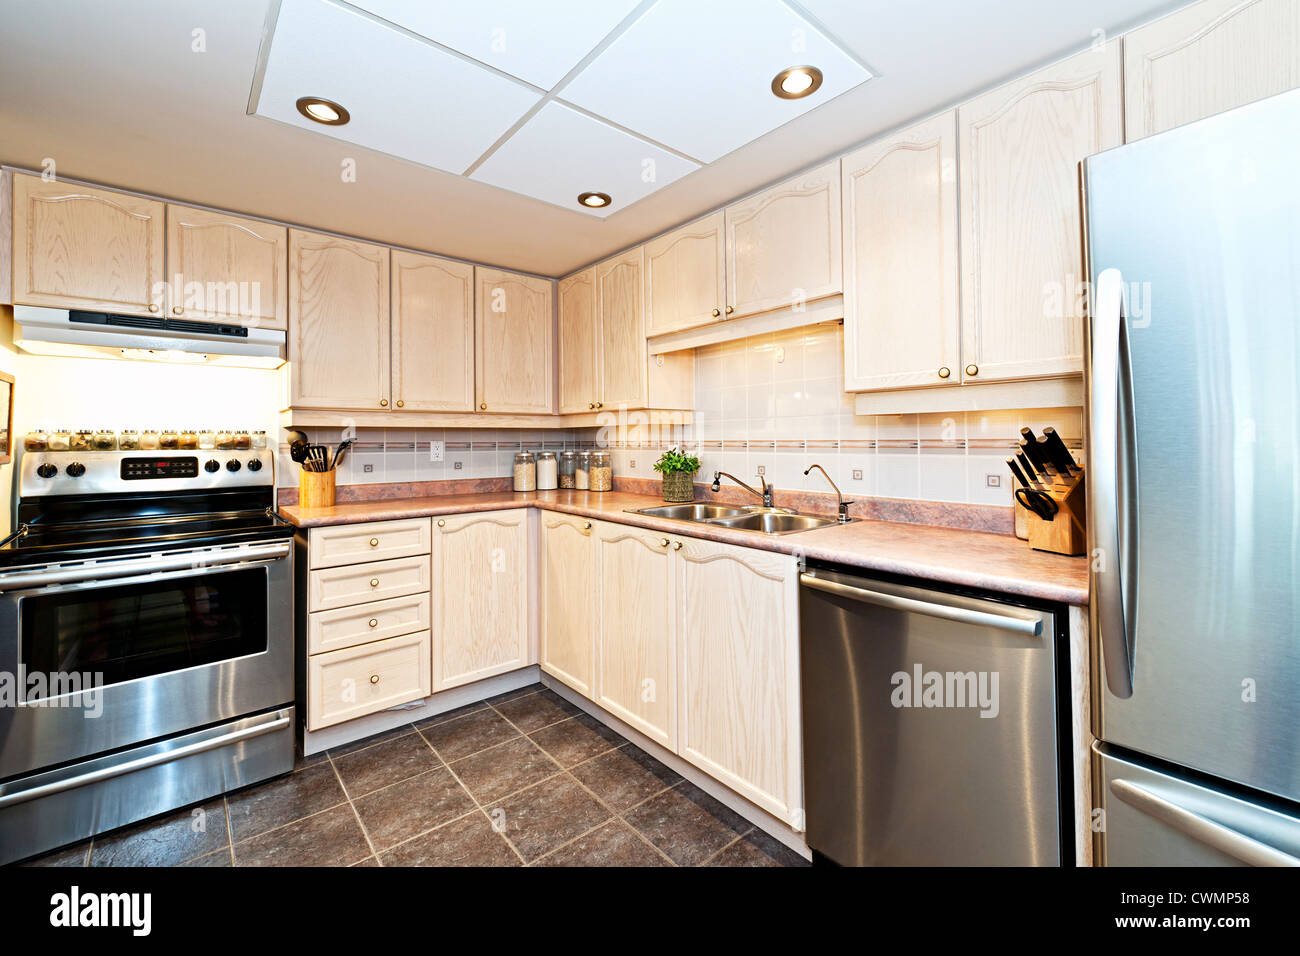 Modern luxury kitchen with stainless steel appliances - Stock Image